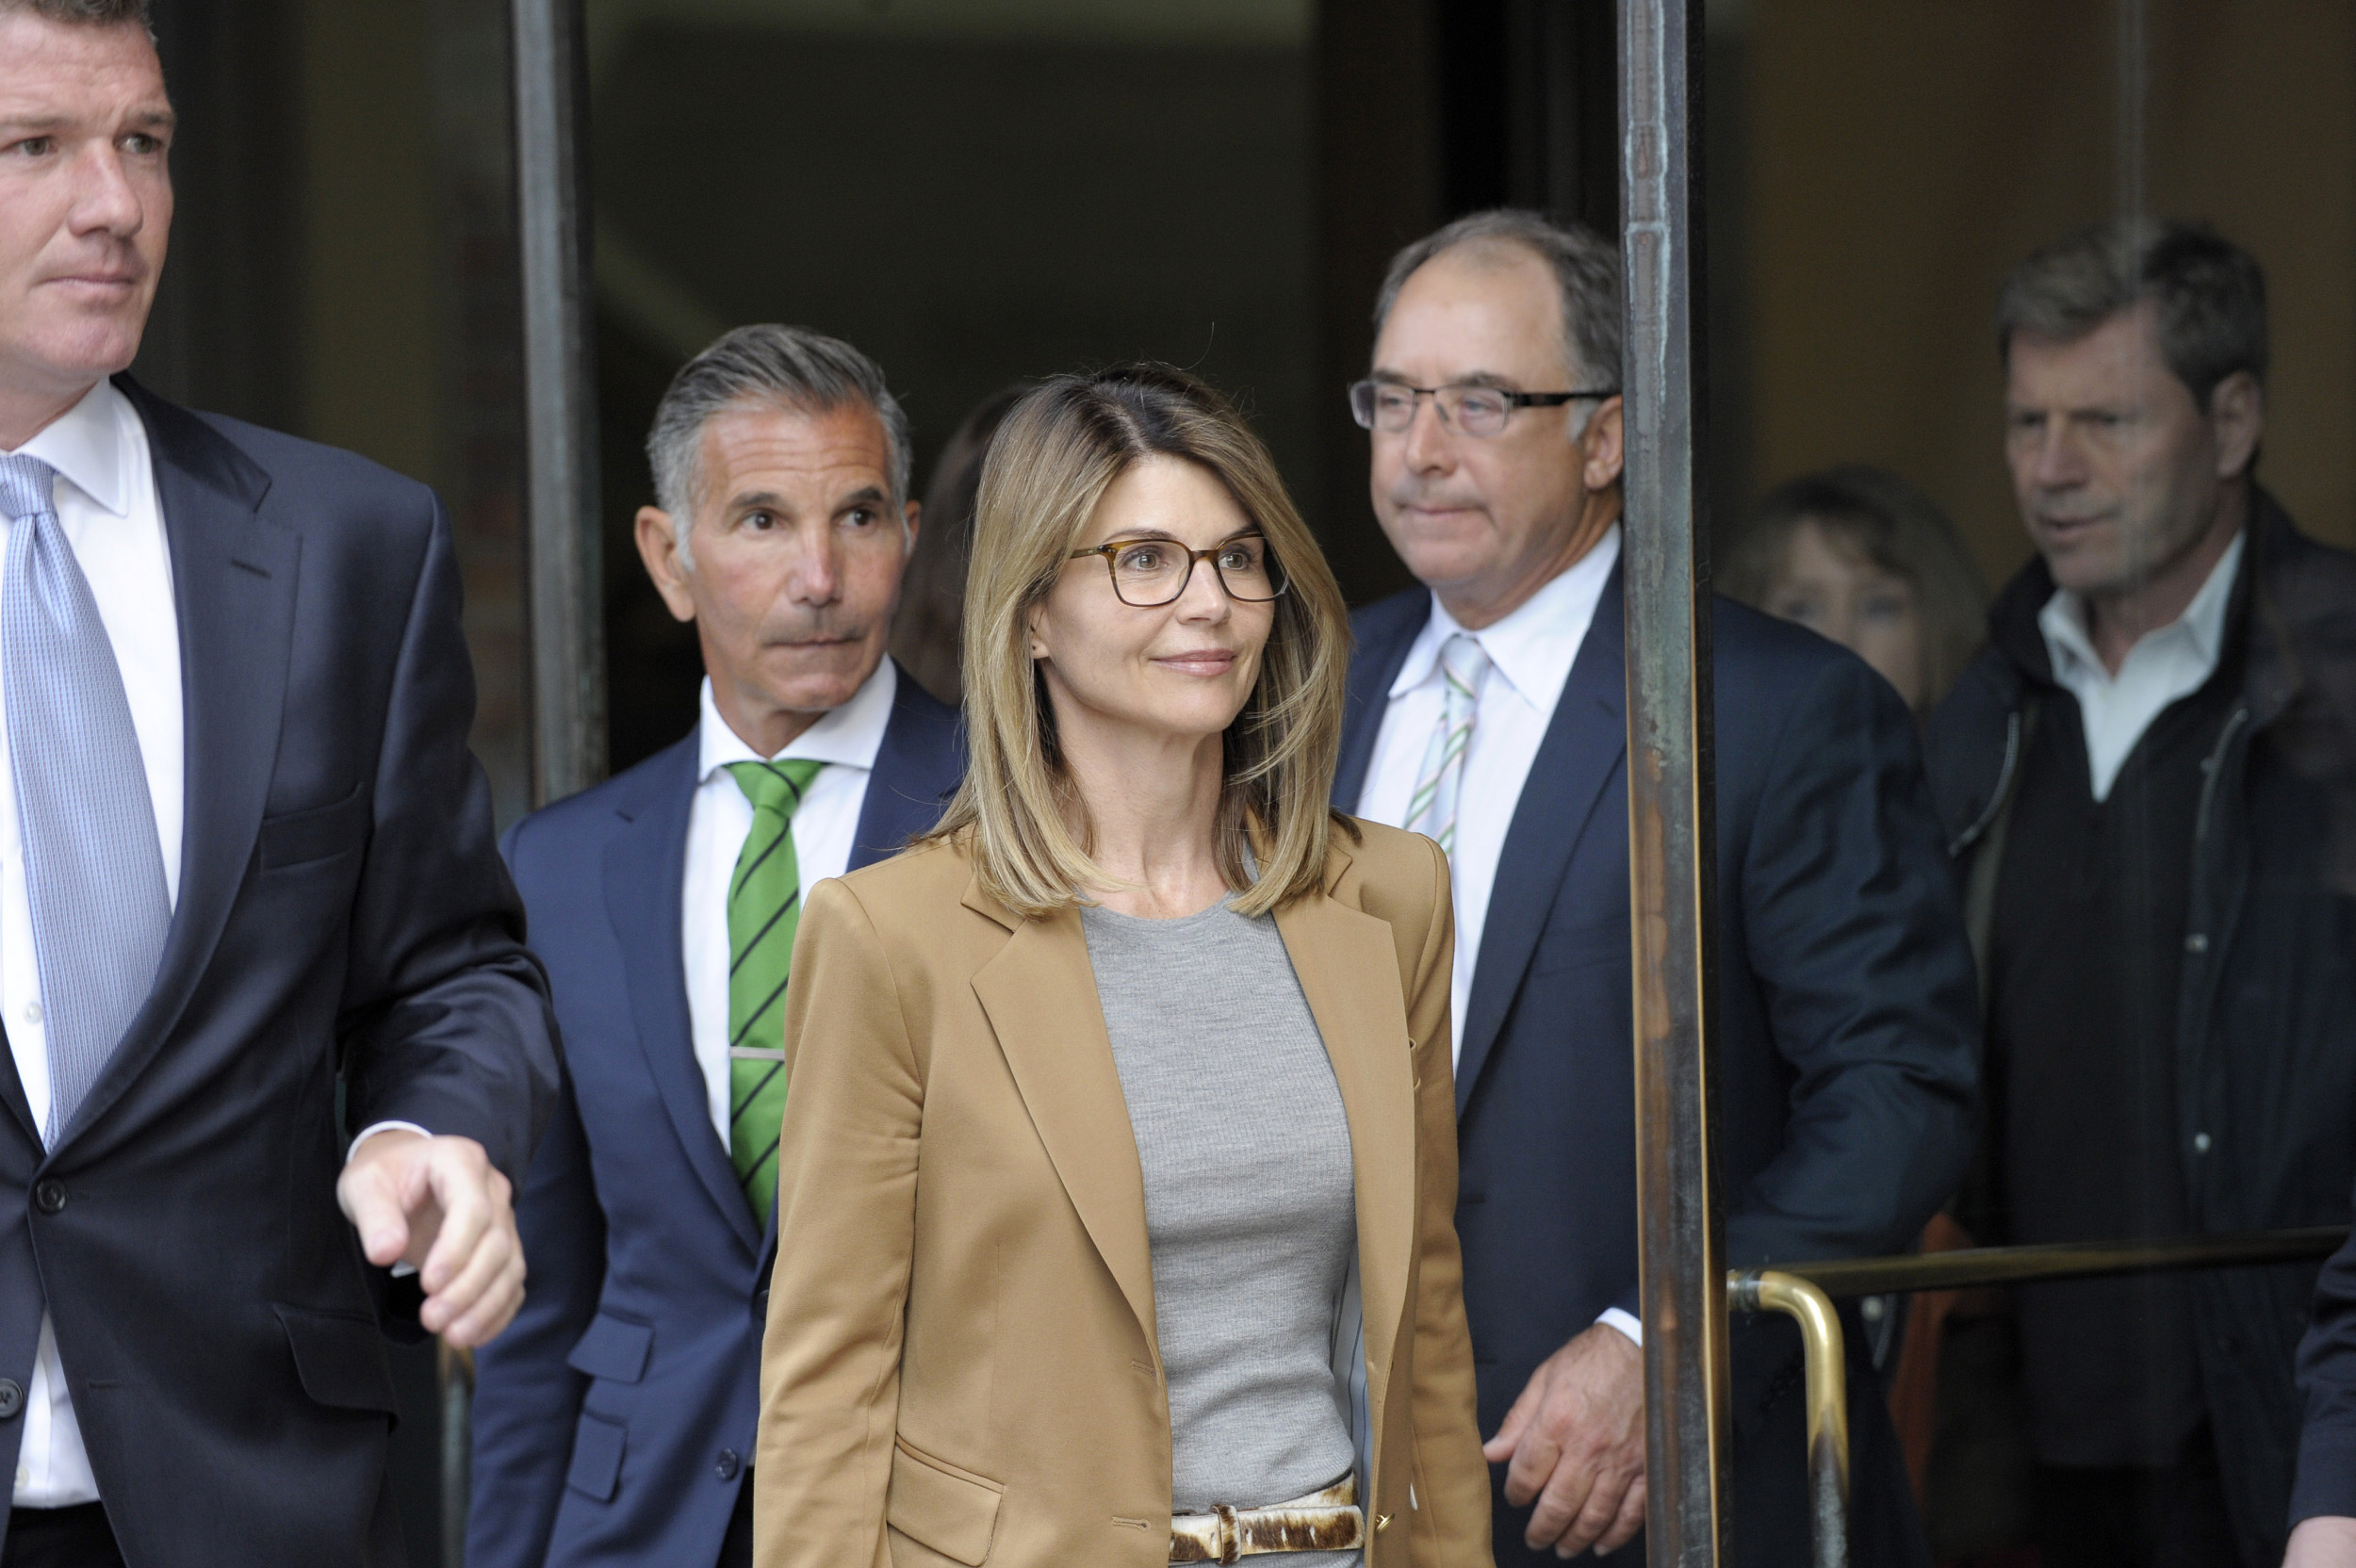 Why Lori Loughlin and Mossimo Giannulli sharing lawyers could create a complicated legal situation